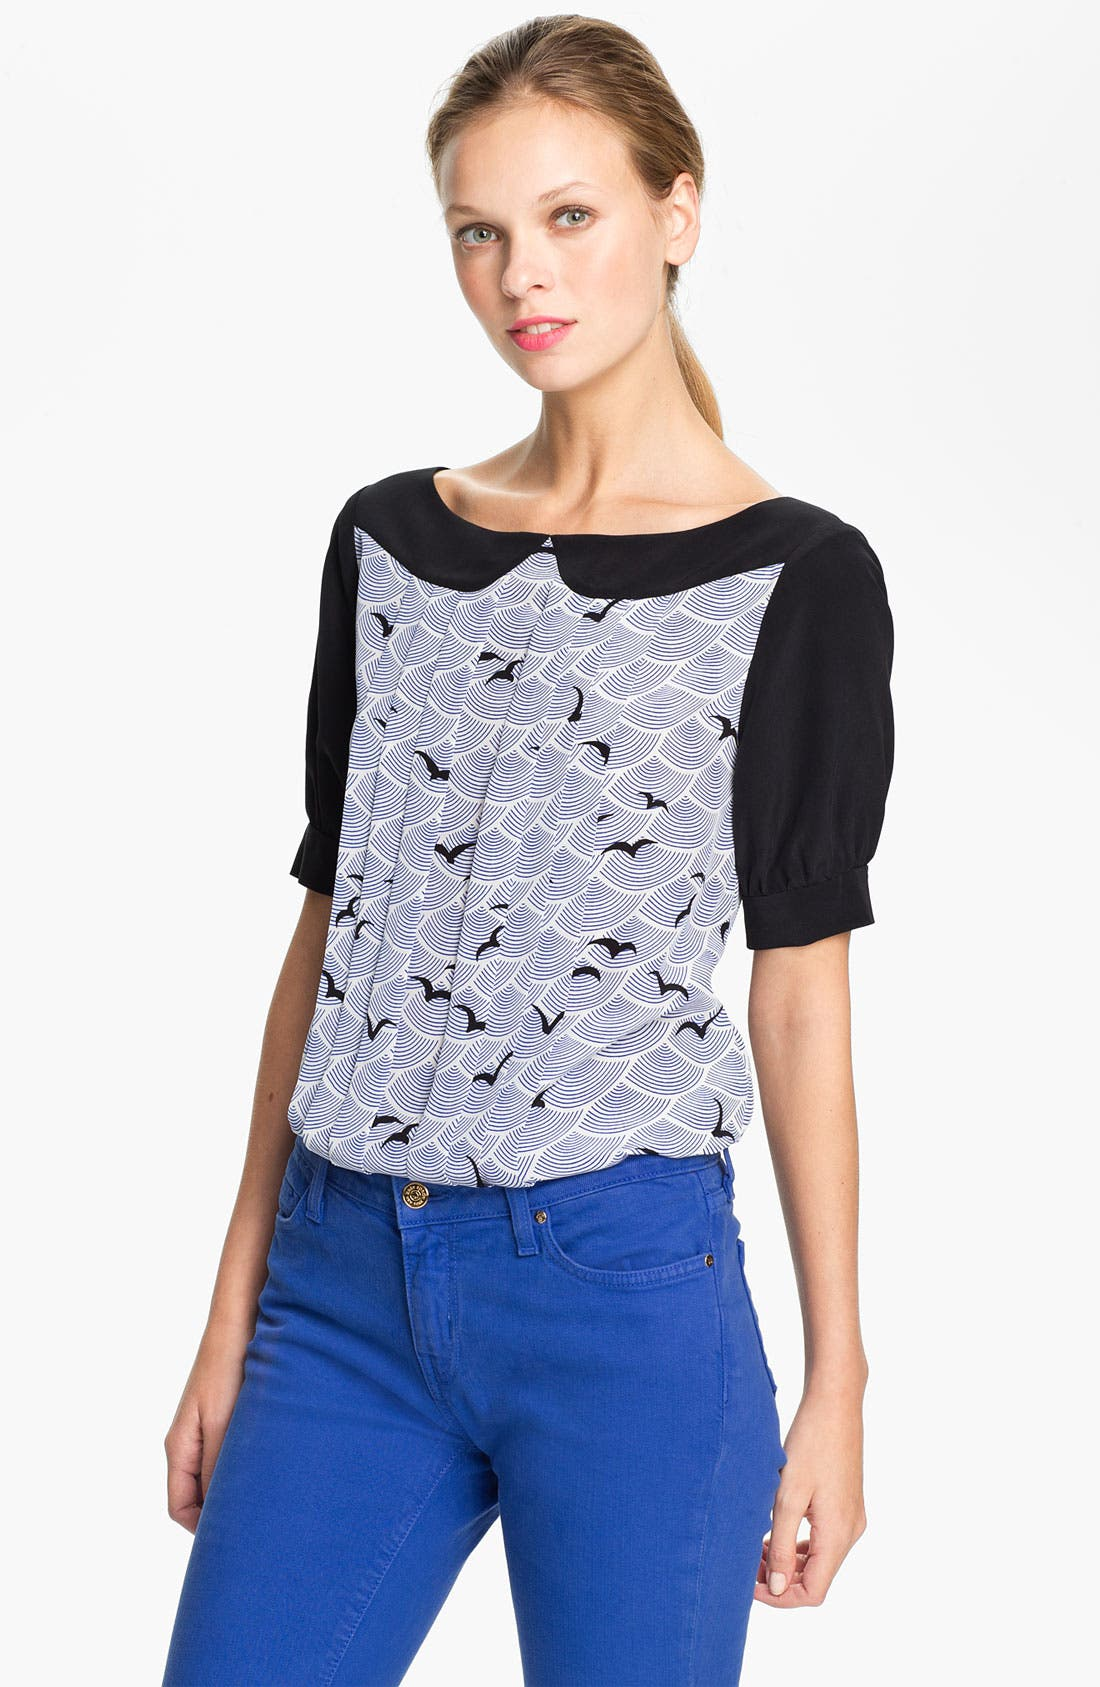 Alternate Image 1 Selected - kate spade new york 'teresa' silk top